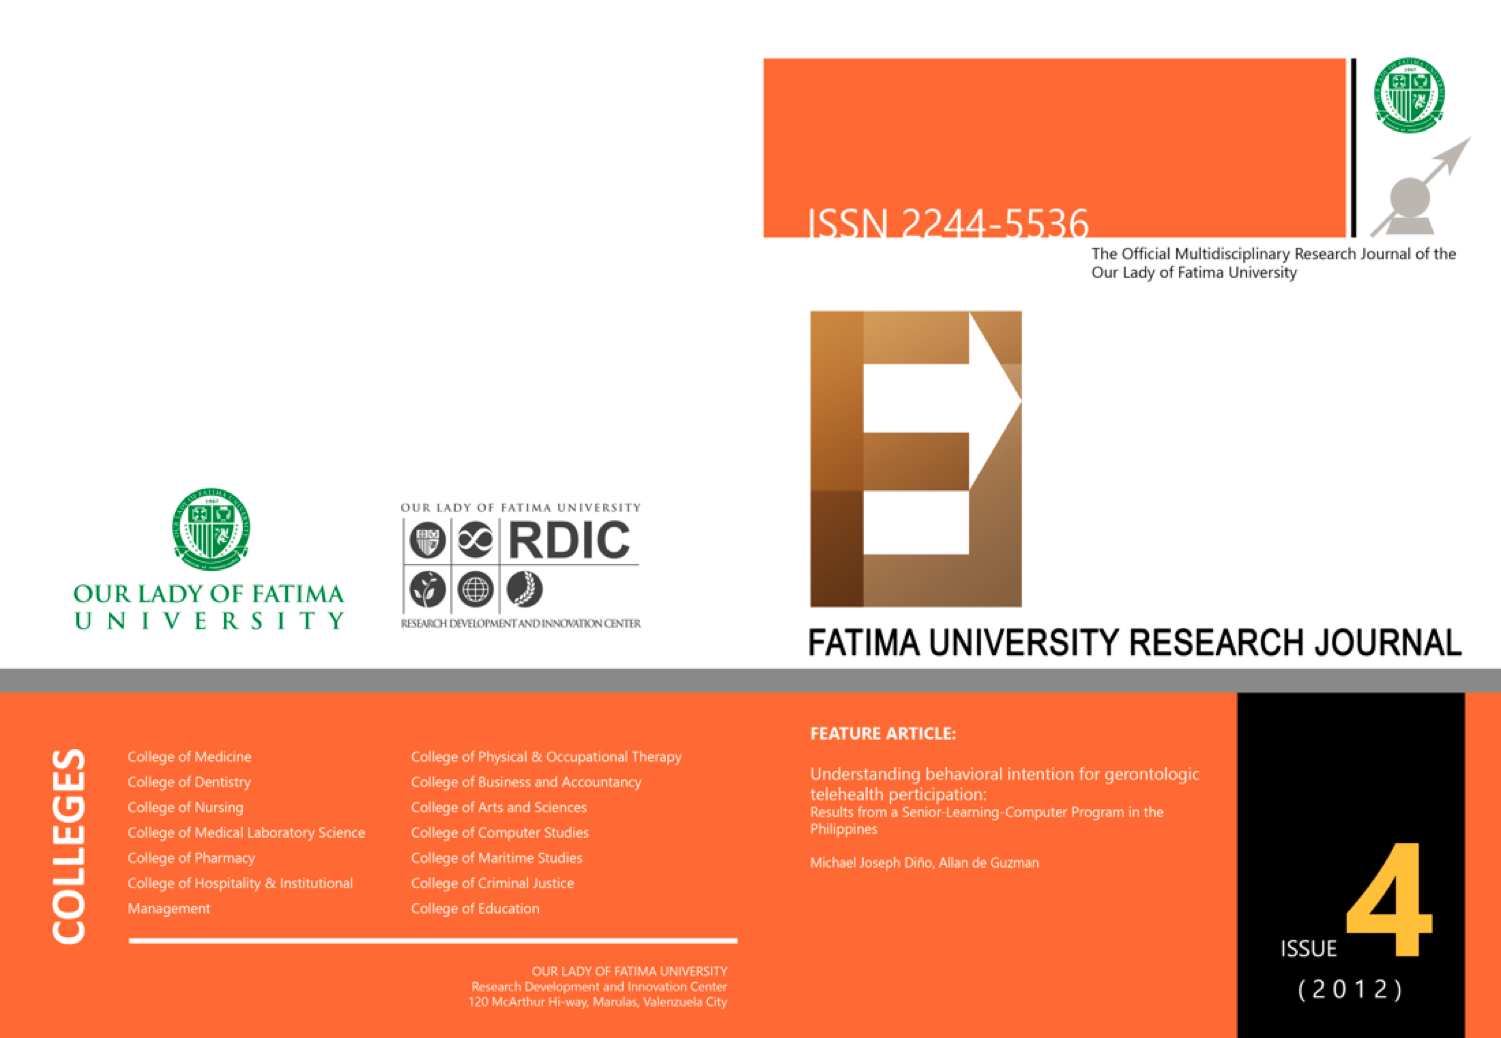 FATIMA UNIVERSITY RESEARCH JOURNAL